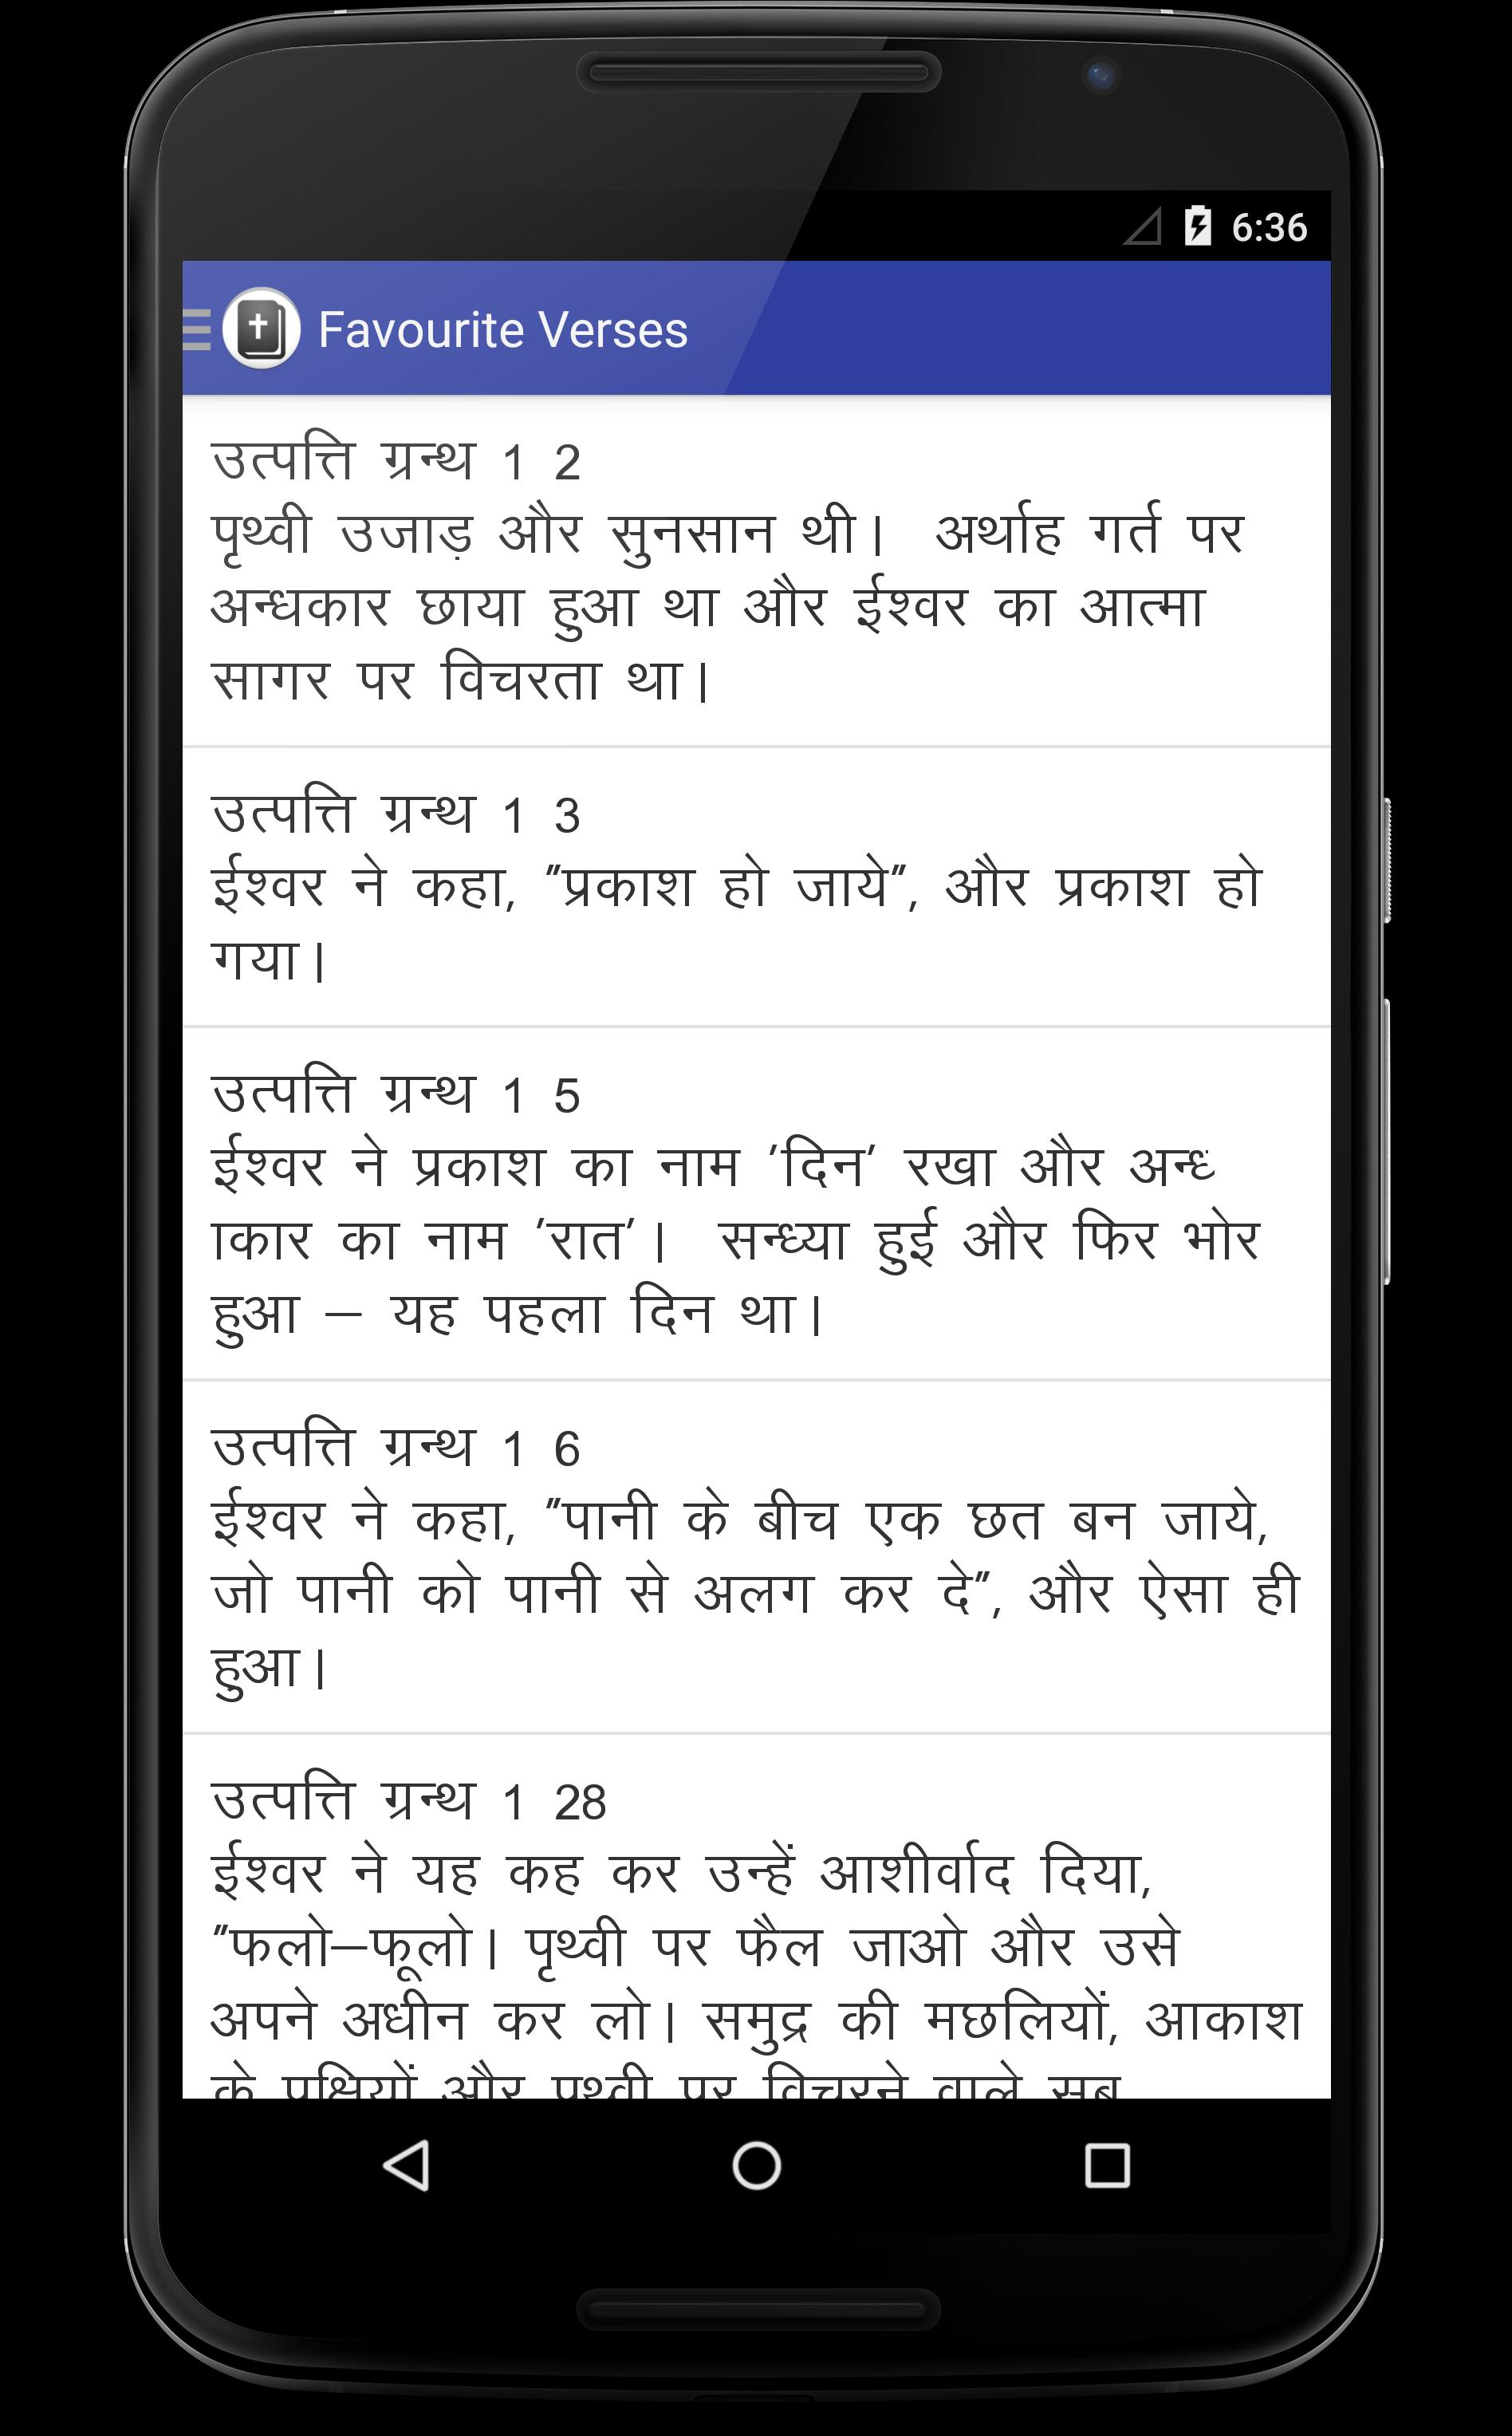 Hindi Bible - Free Bible App for Android - APK Download